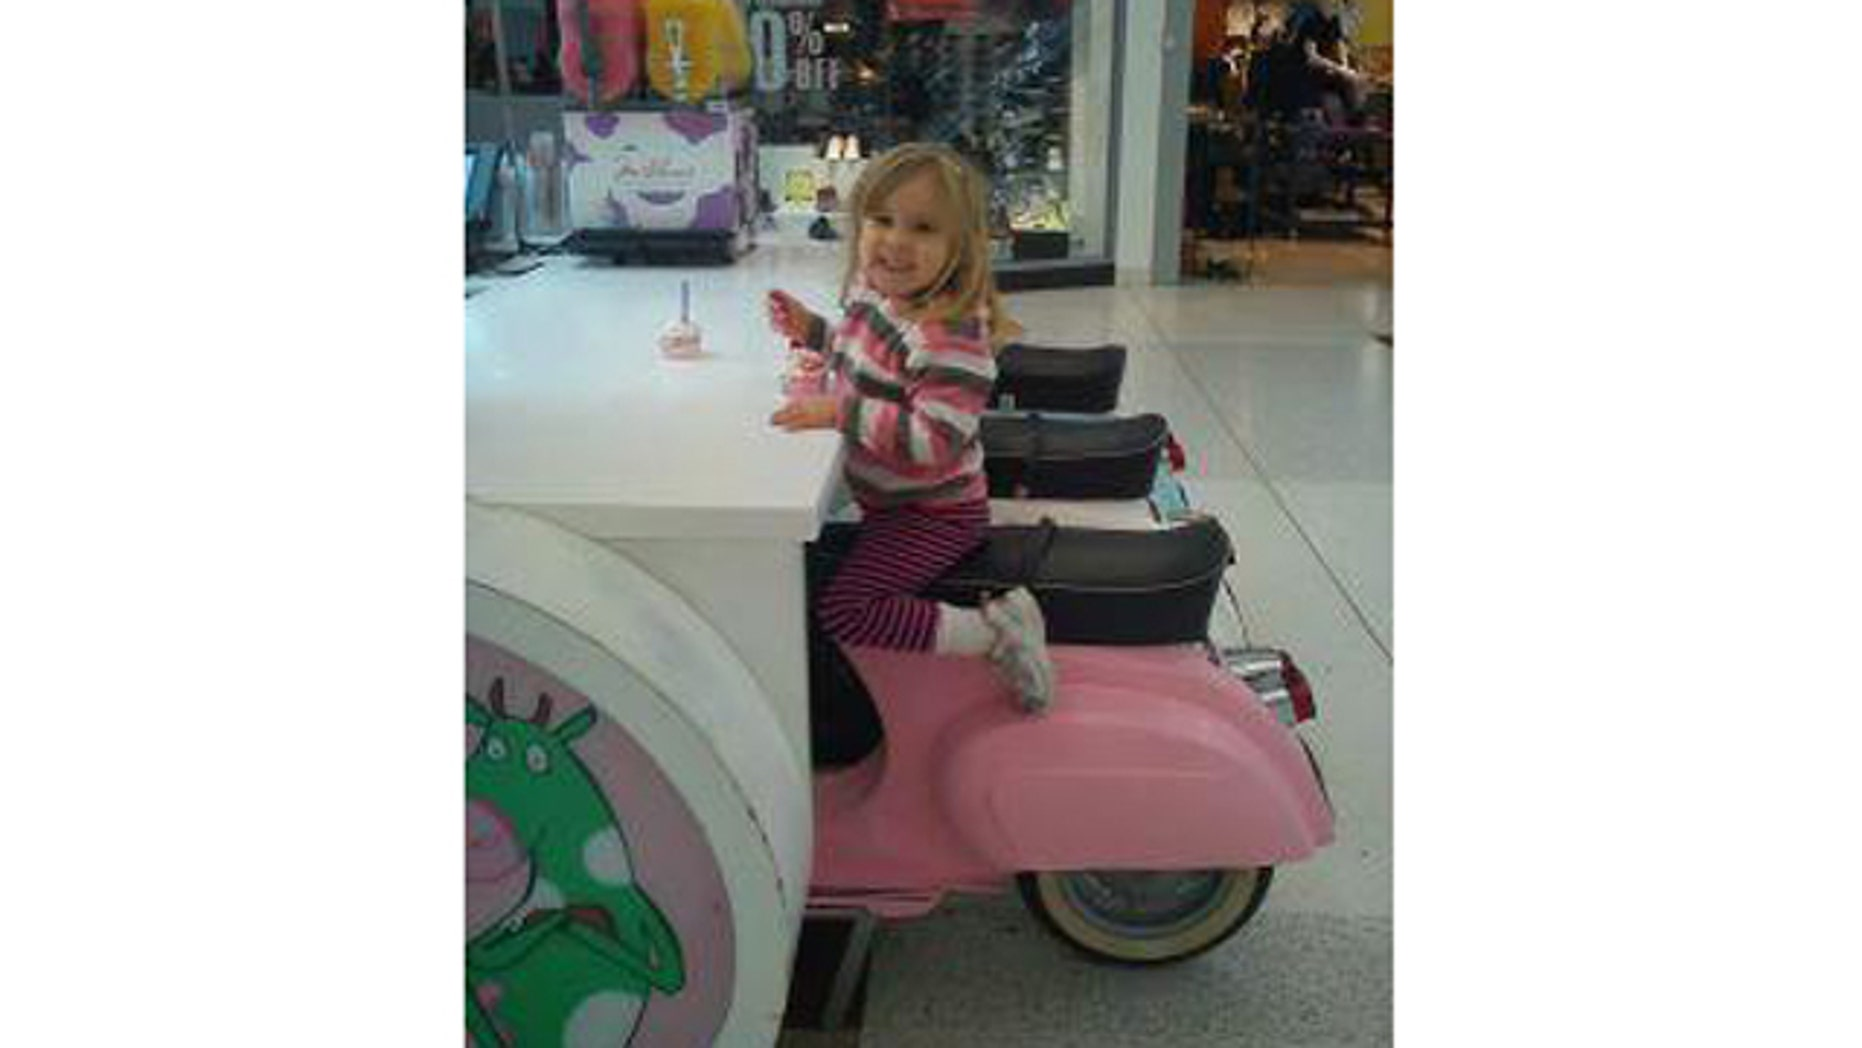 Chris White snapped this photo of his daughter, Hazel, eating ice cream at Braehead shopping center near Glasgow, Scotland.